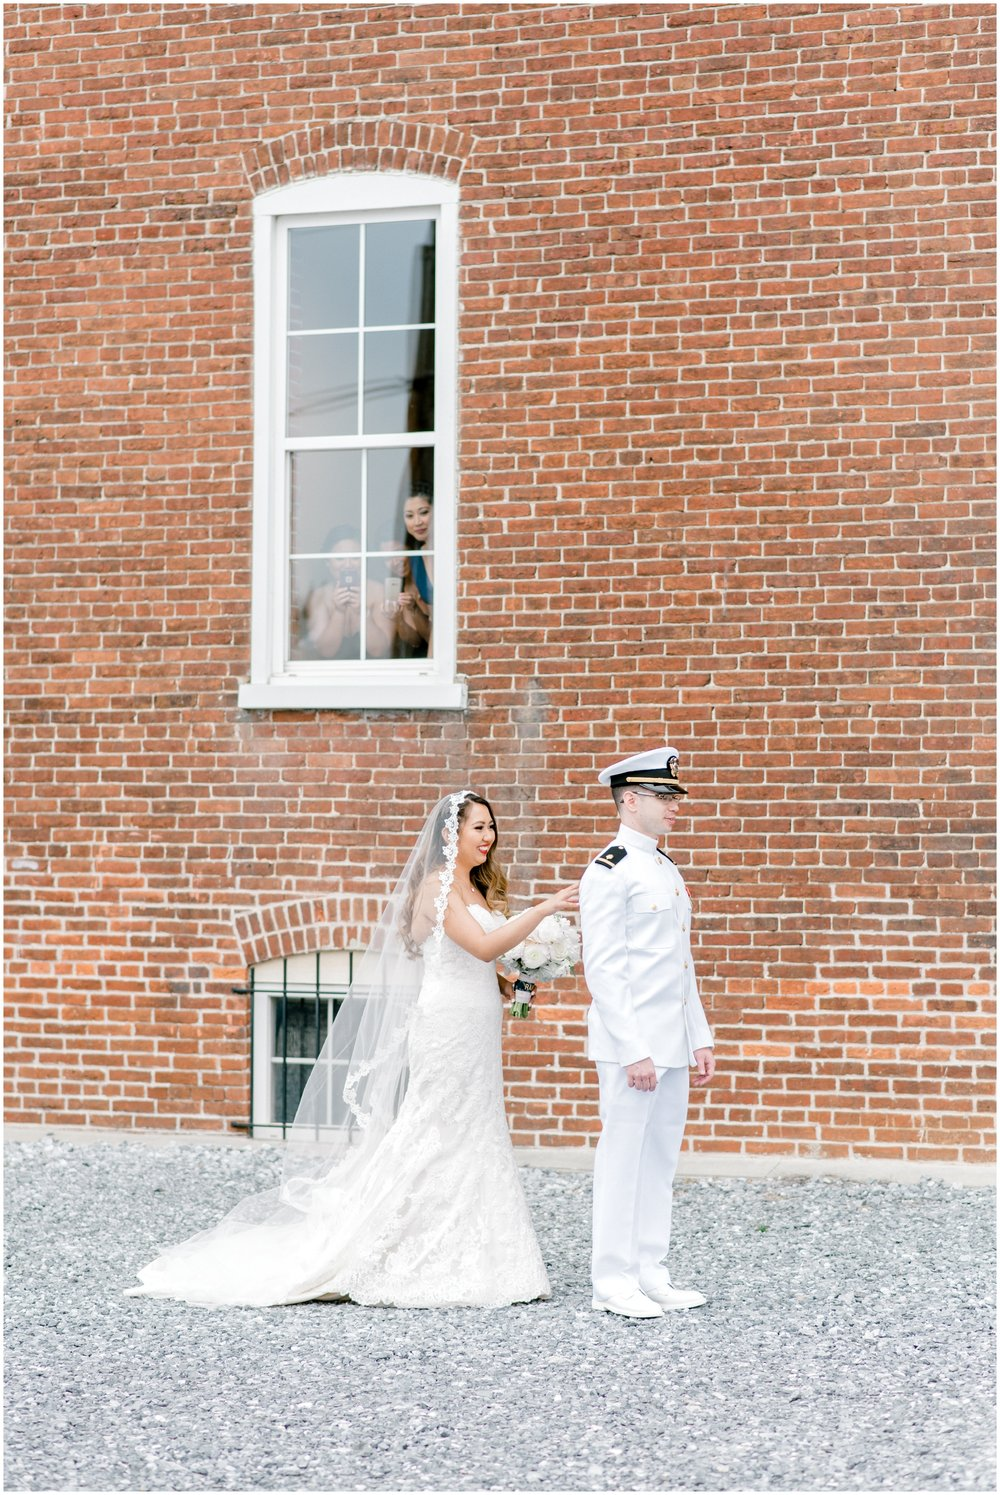 Spring Wedding at The Booking House in Manheim, PA - Krista Brackin Photography_0010.jpg